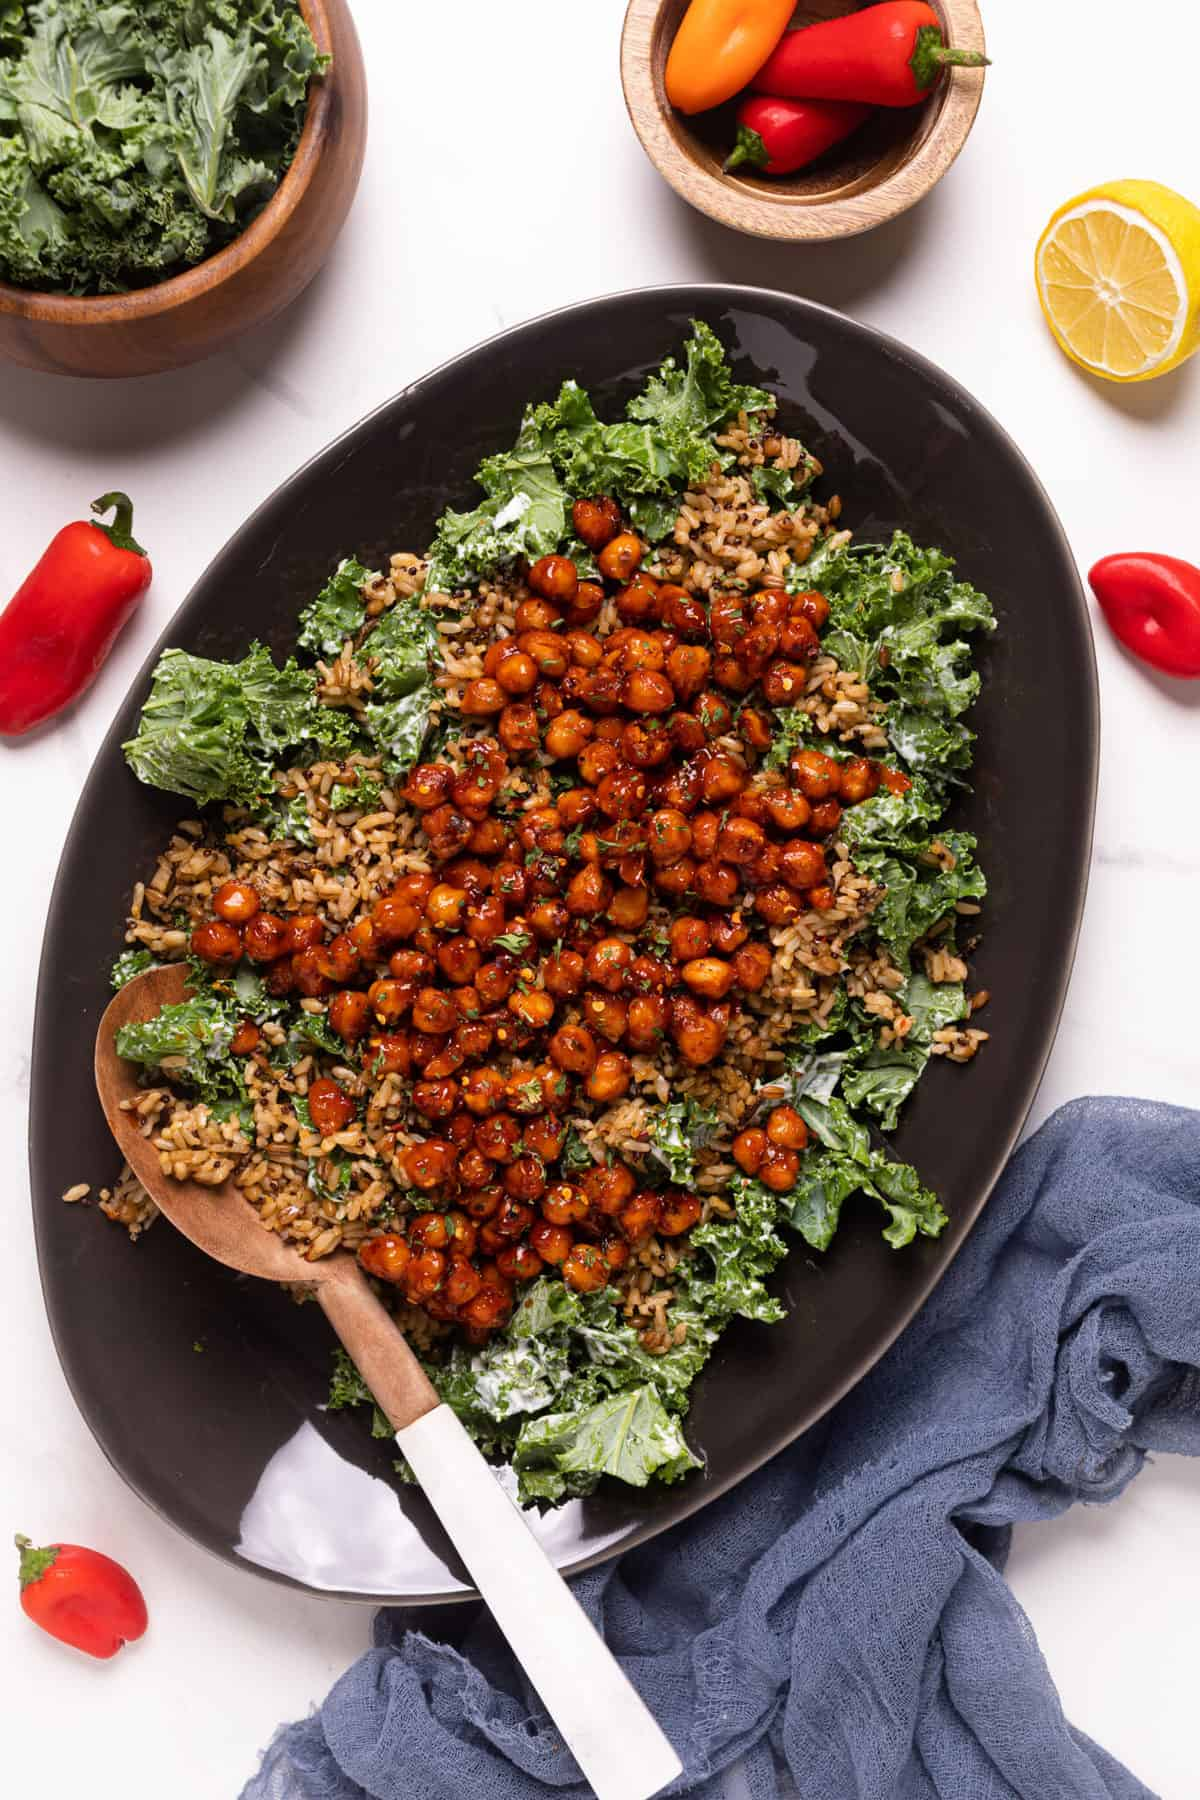 Healthy Loaded Kale Salad with Spicy Chickpeas on a black serving platter with fresh peppers on the side